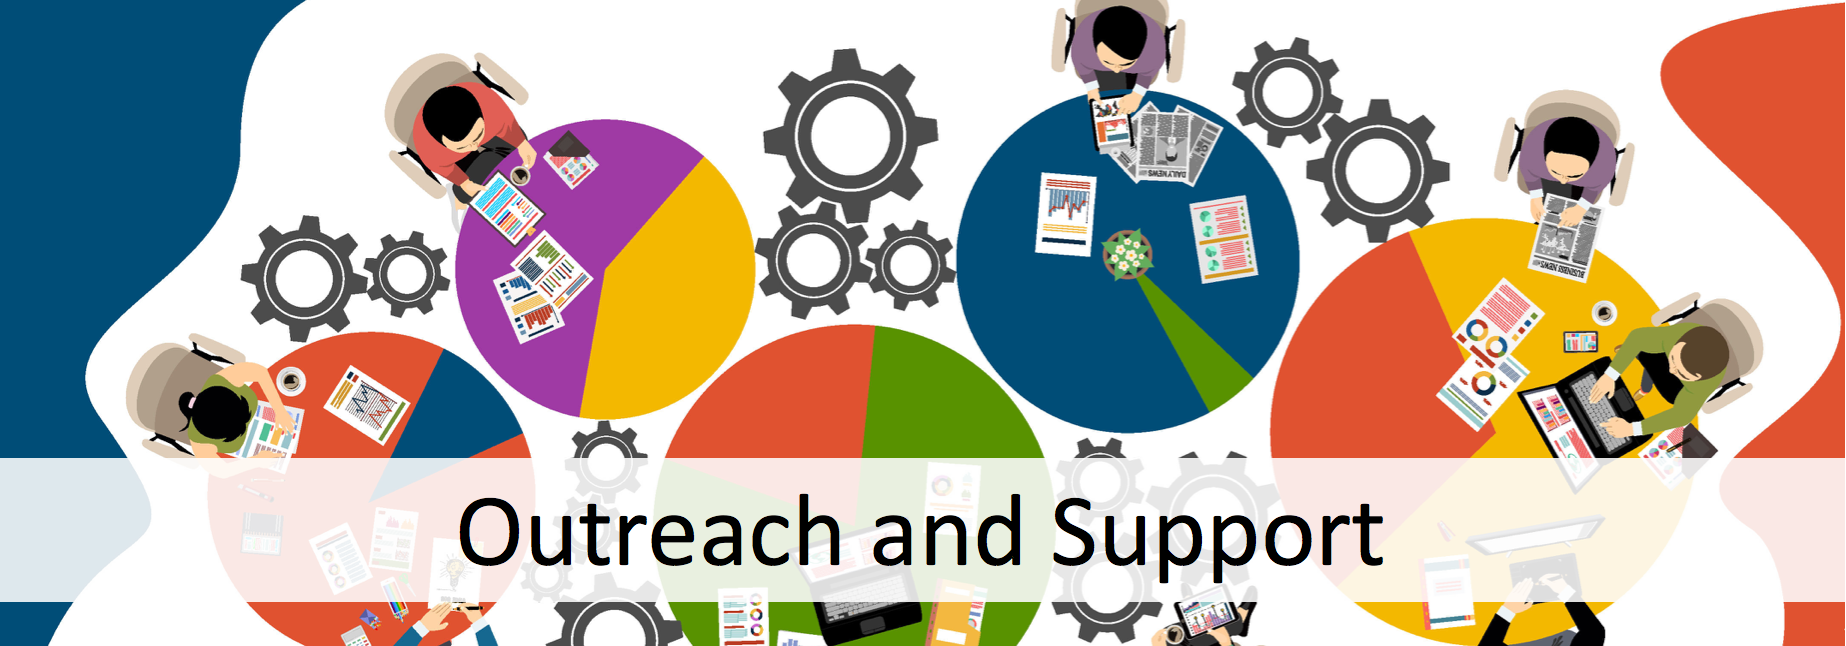 Outreach and Support Banner